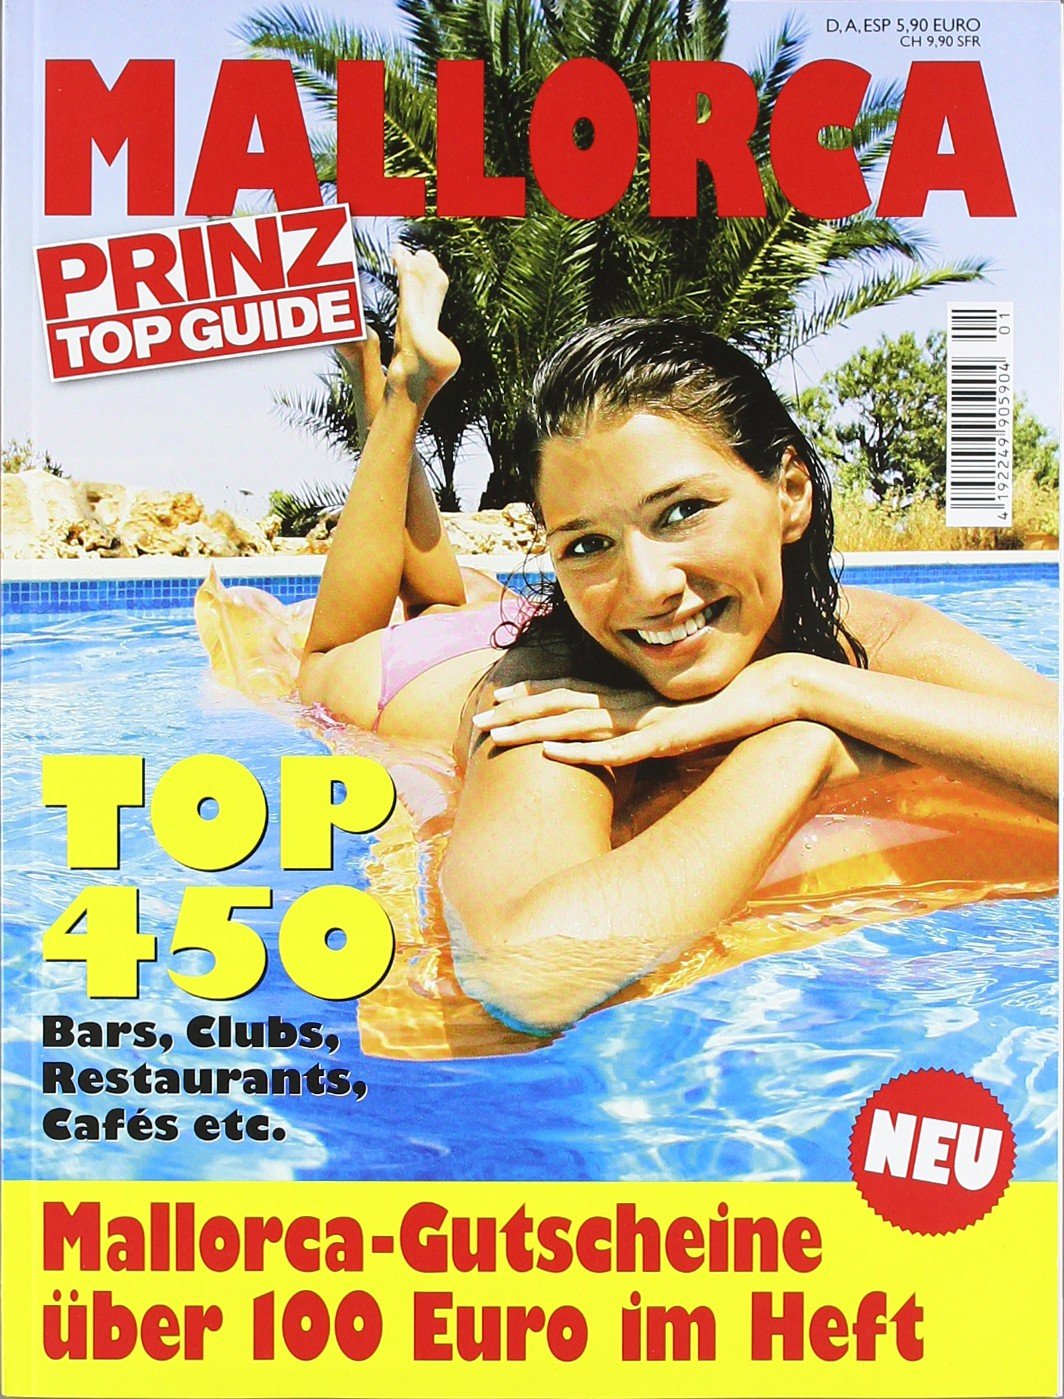 Prinz Top Guide Mallorca 2011